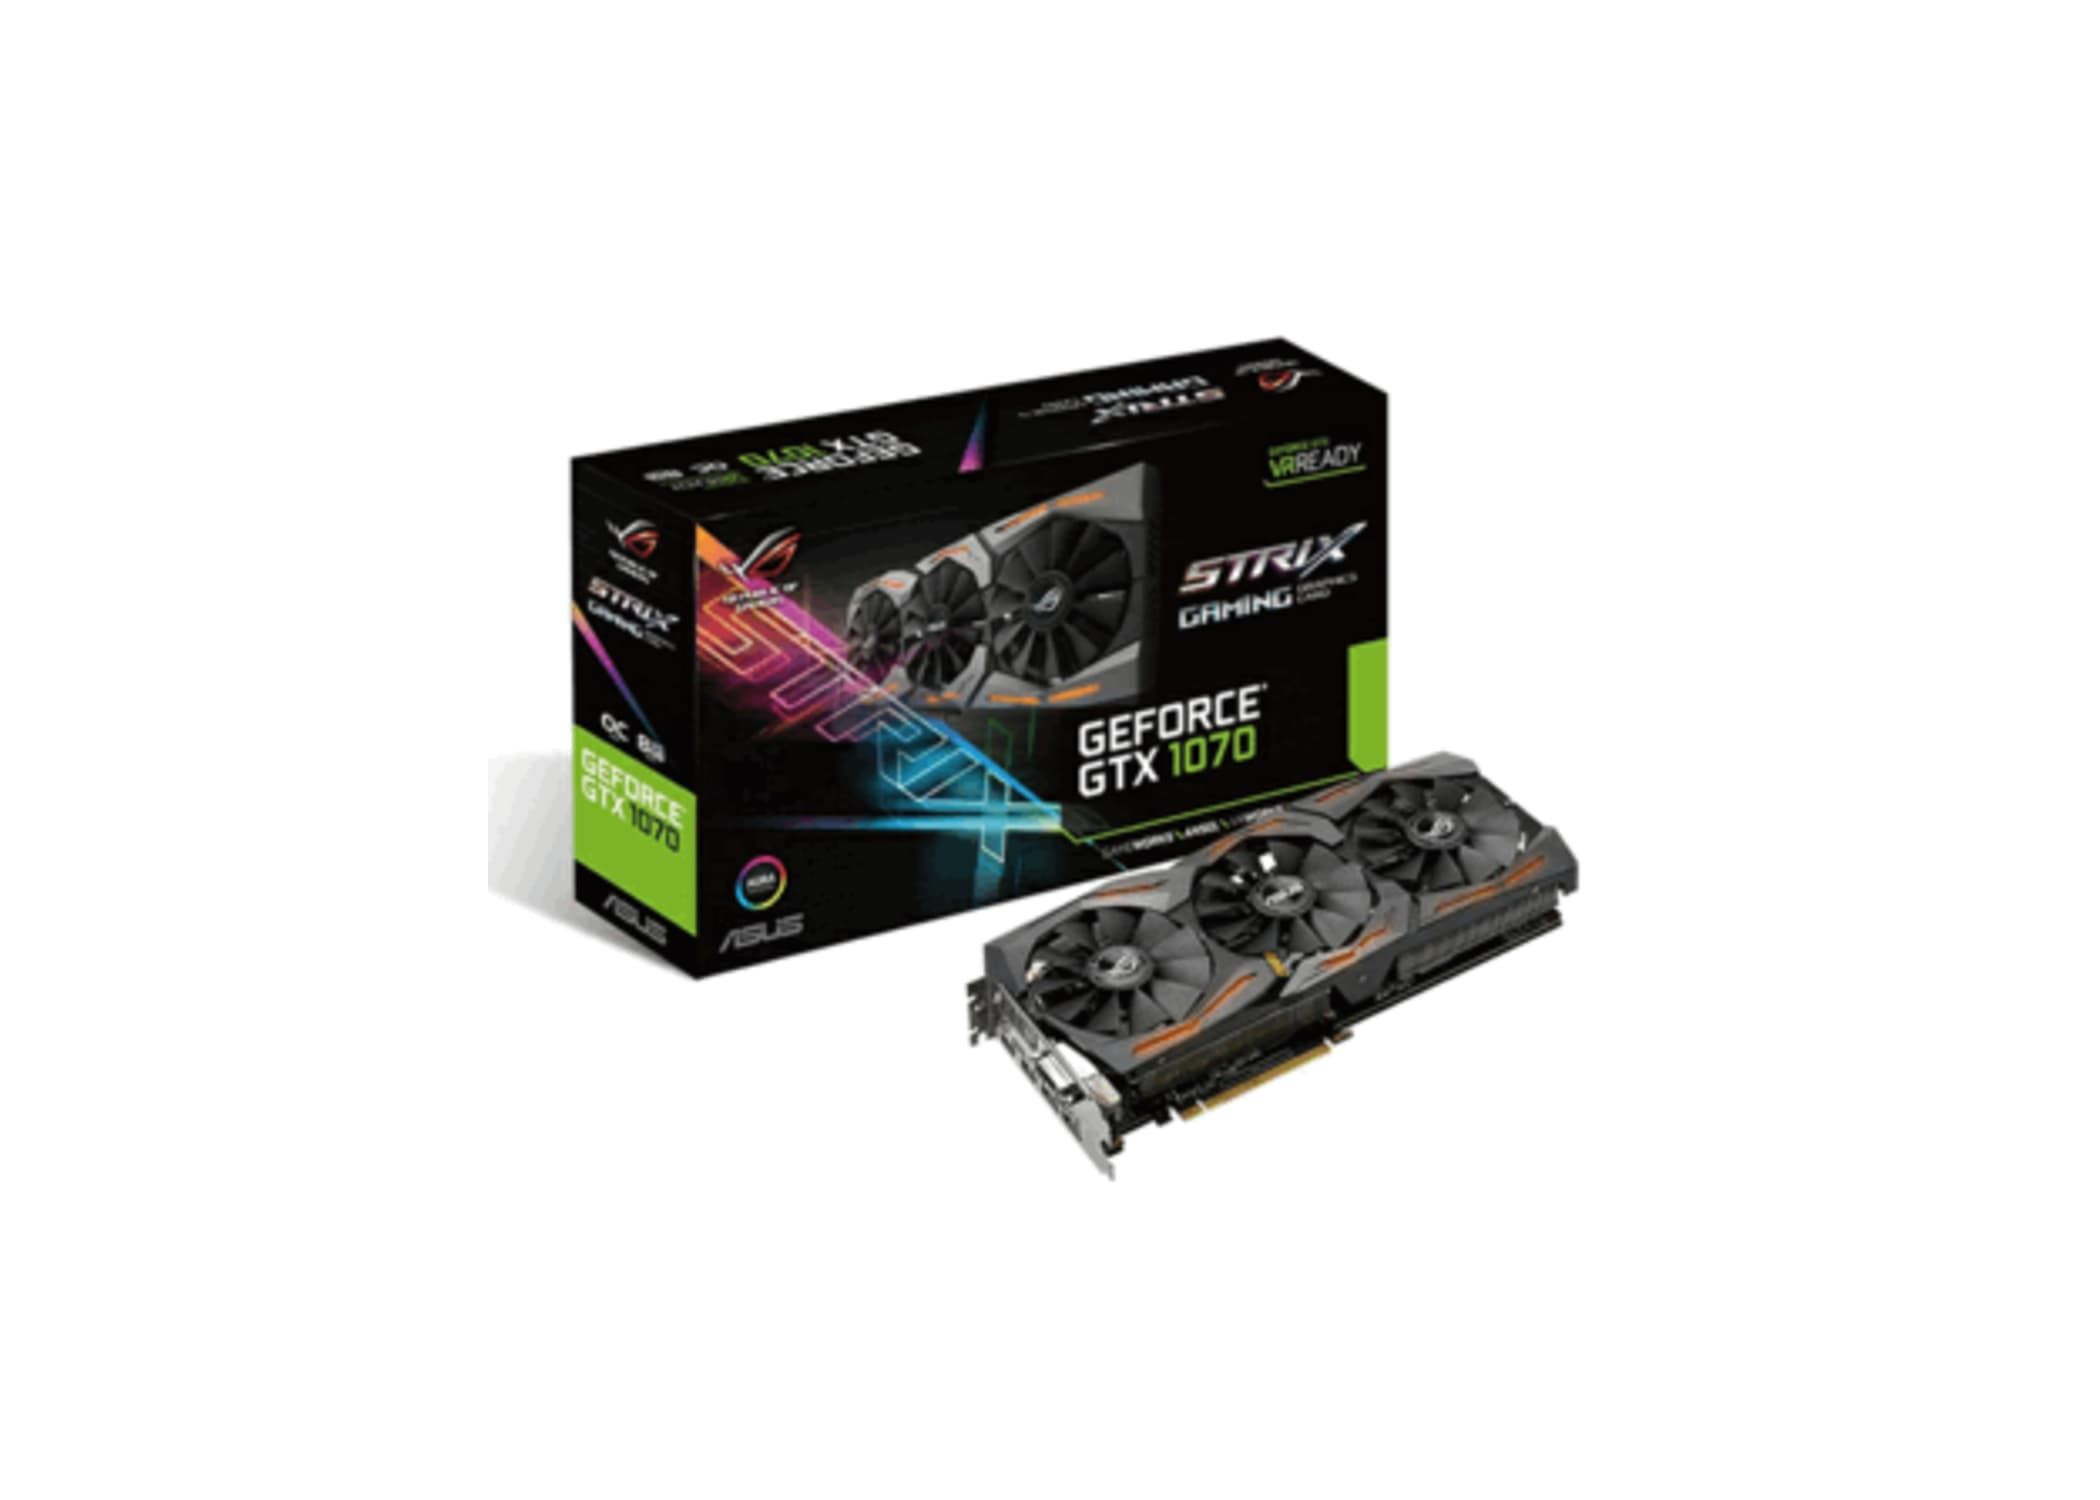 Asus Geforce Gtx 1070 8gb Rog Strix Oc Graphics Card In 2020 Cards Card Games Creative